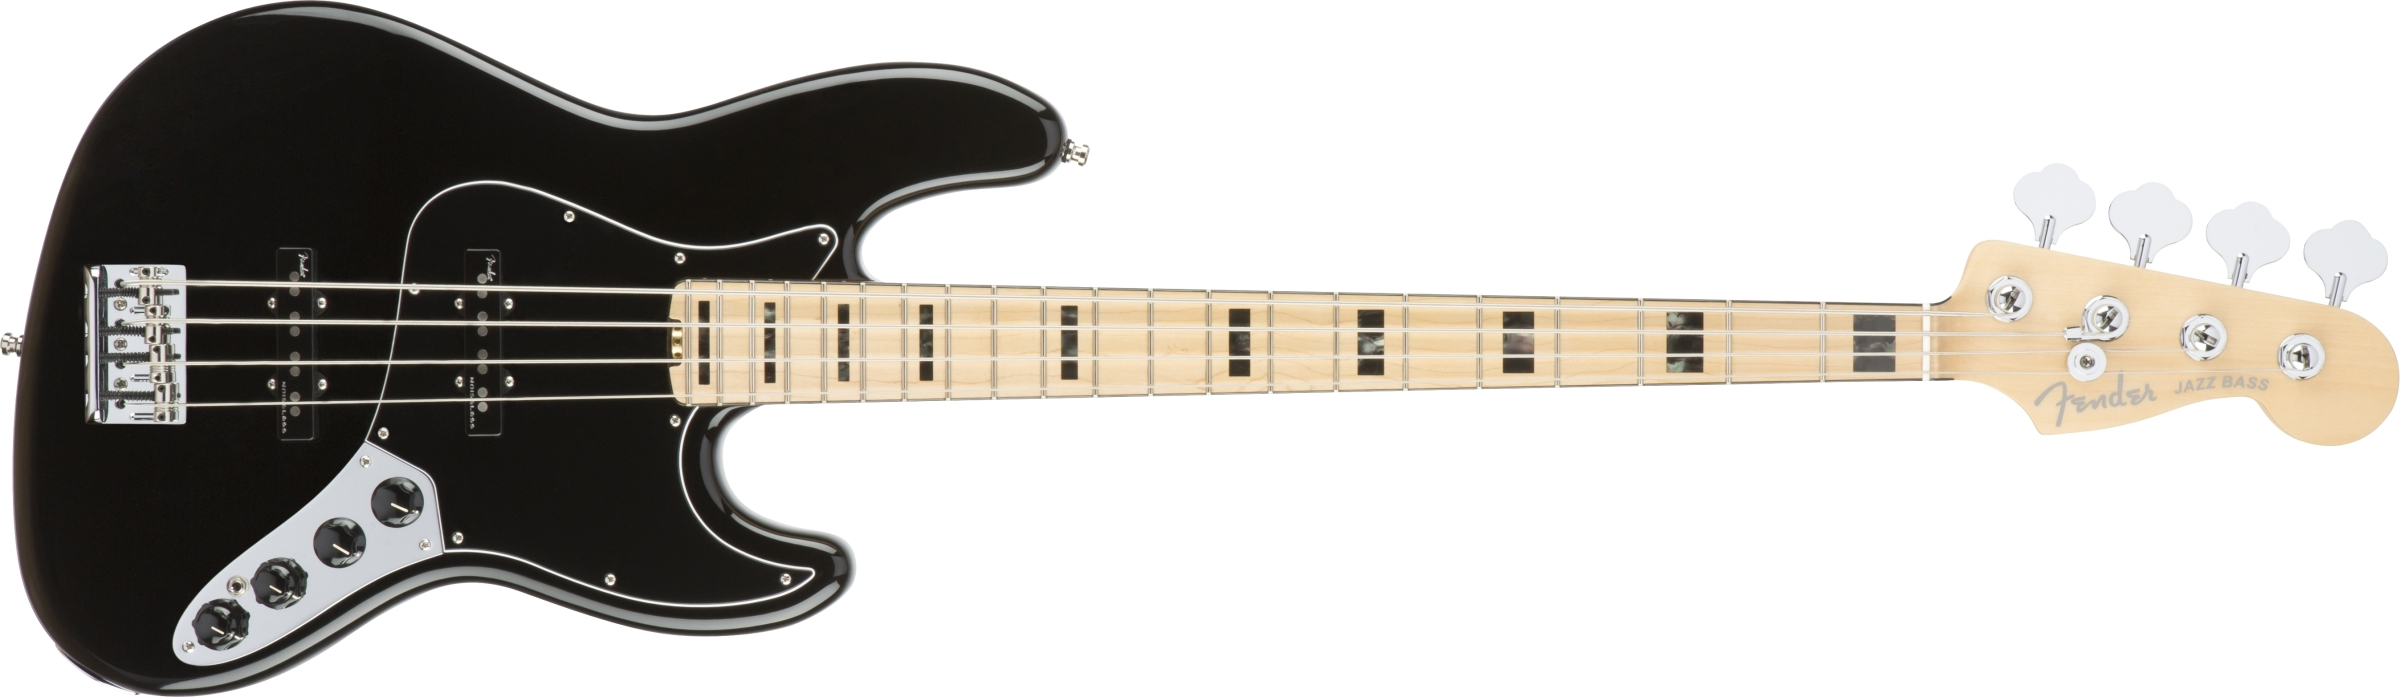 Bass Guitars Musical Instruments & Gear Electric Bass American Elite Jazz Bass Blk M Used High Quality Materials Fender Usa